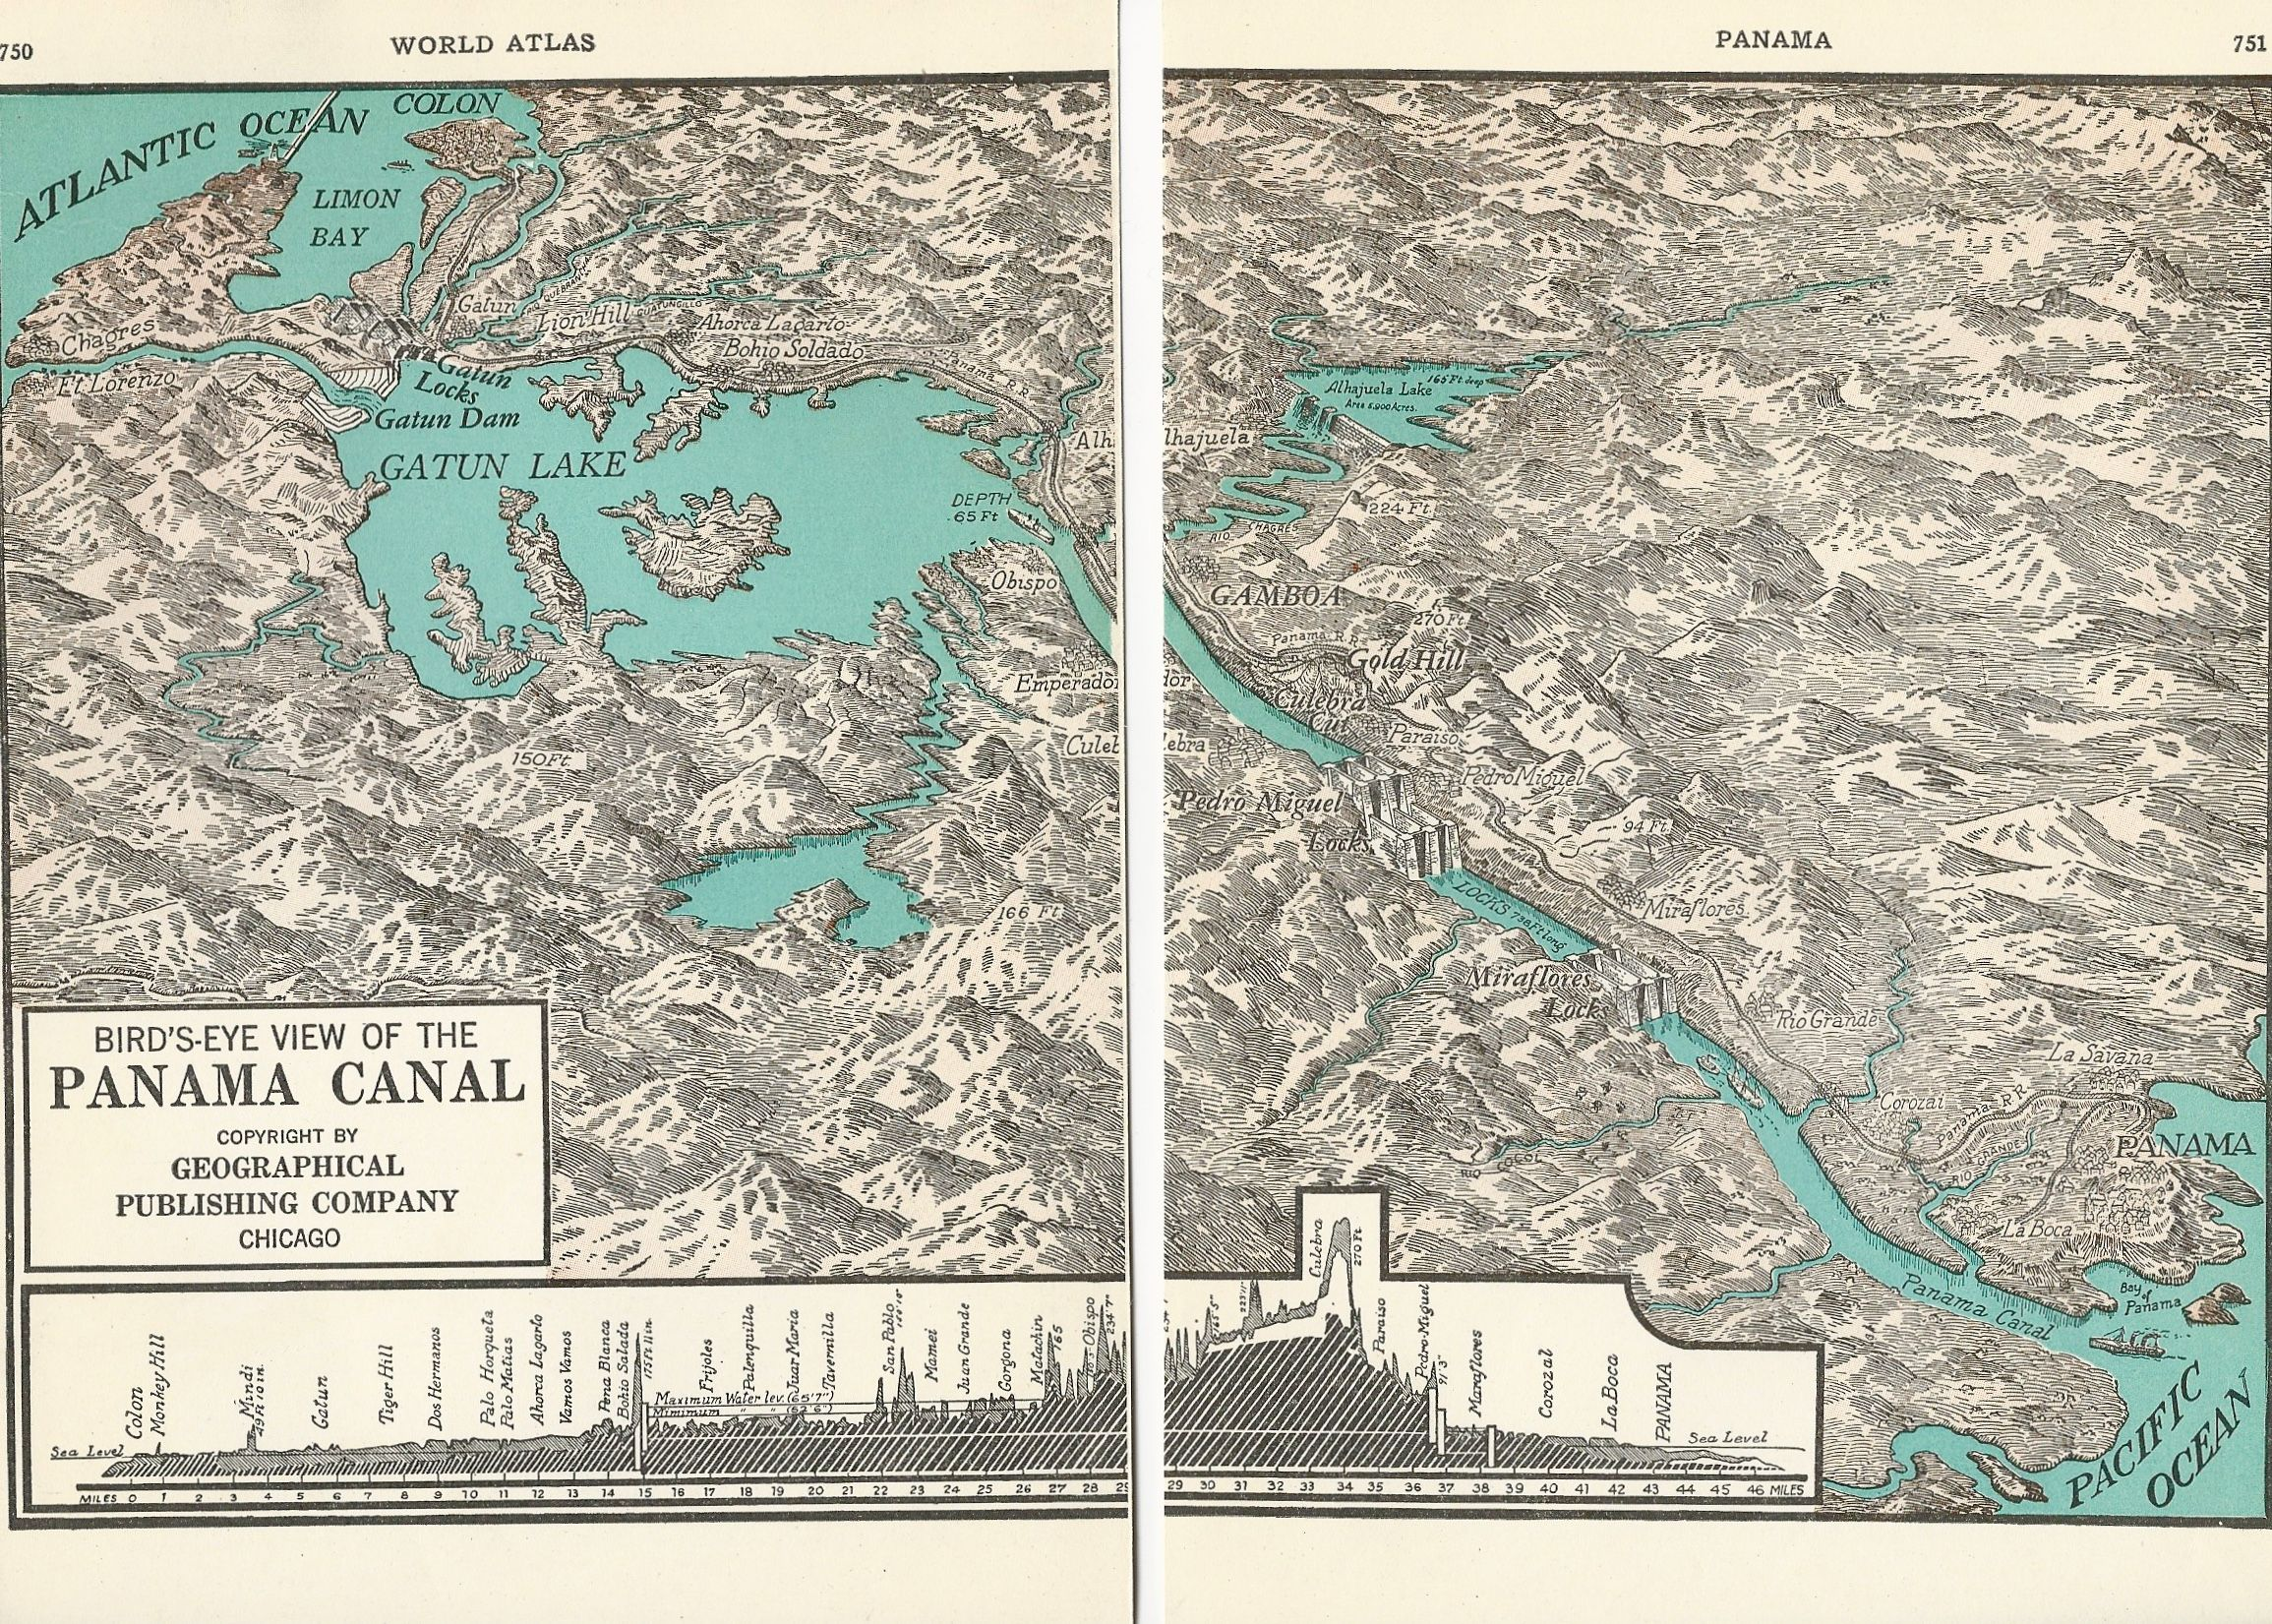 1937 map of a birds eye view of the panama canal from world atlas 1937 map of a birds eye view of the panama canal from world atlas gumiabroncs Images